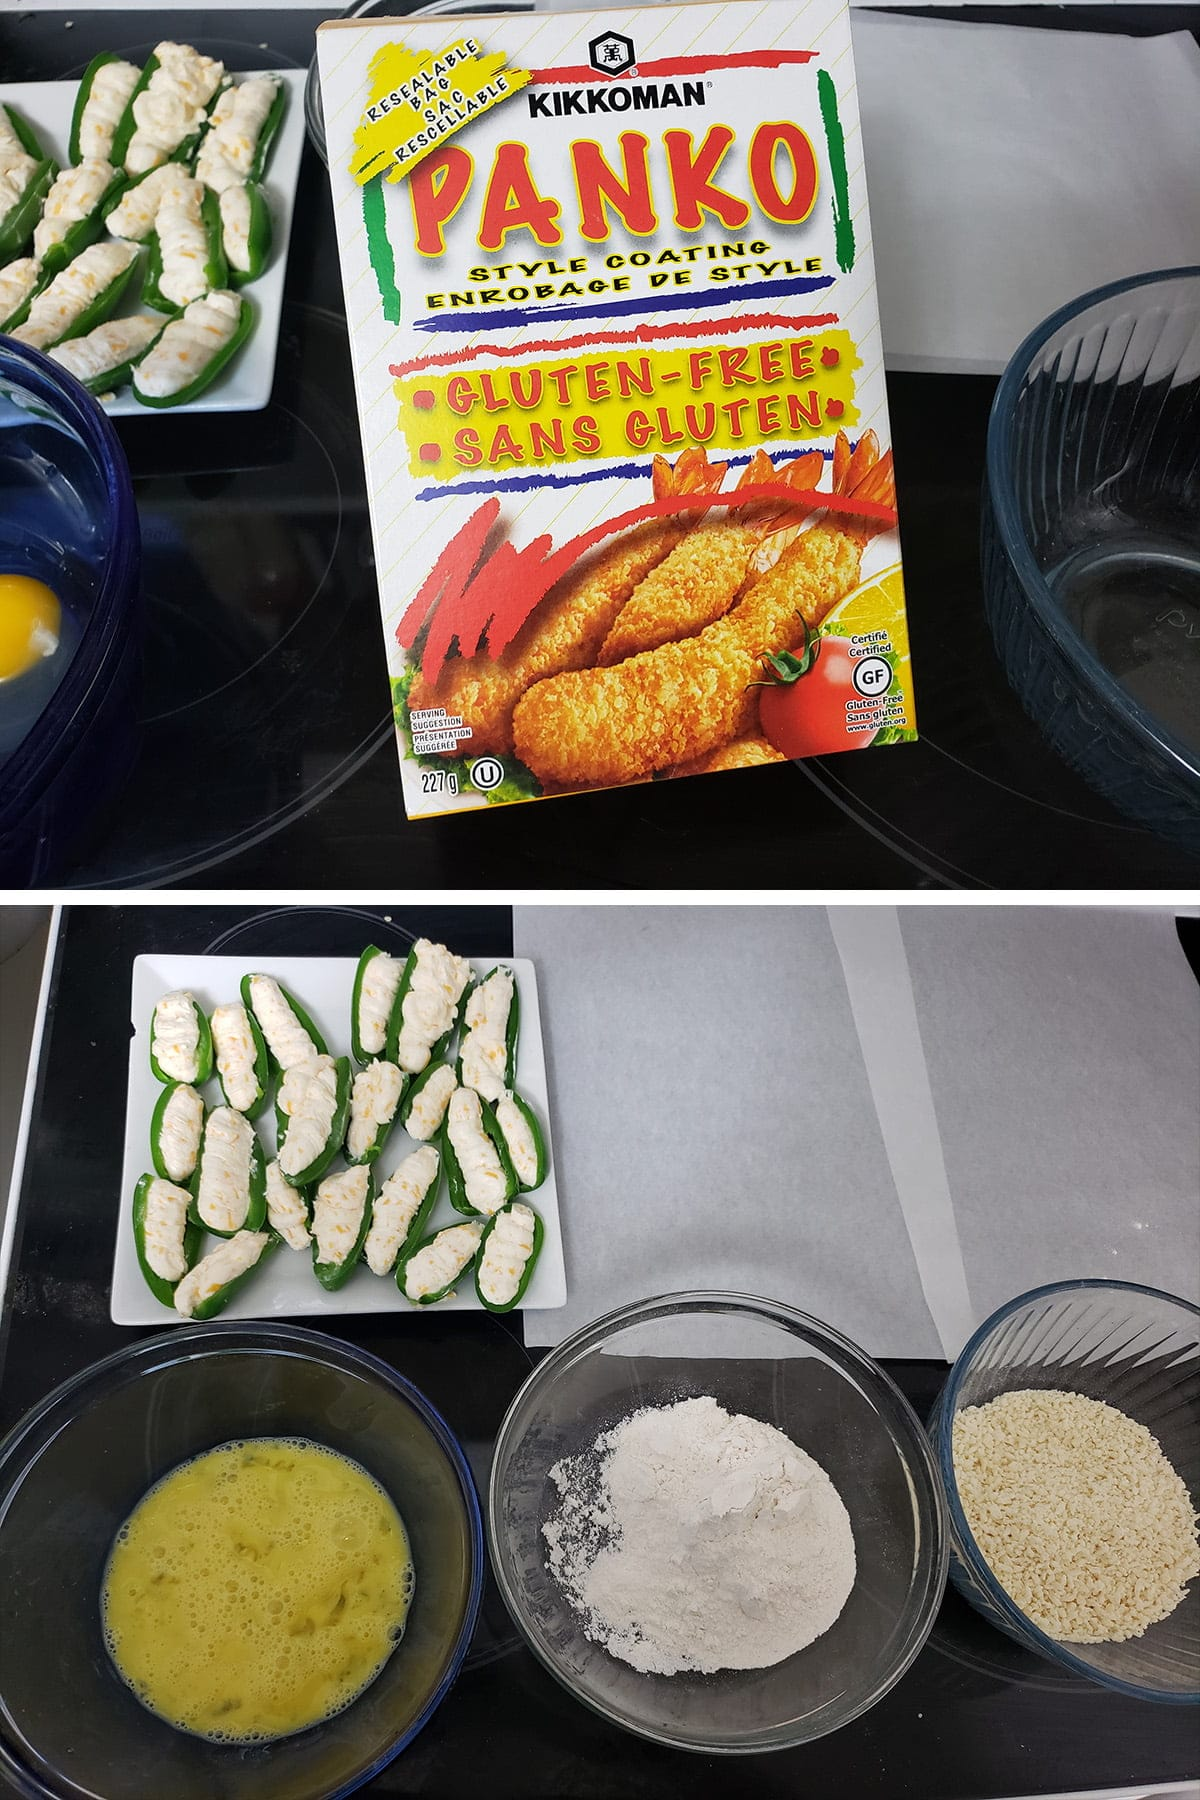 A two part compilation image showing a box of gluten-free panko crumbs, and a set up of 3 bowls with egg, flour, and panko in them.